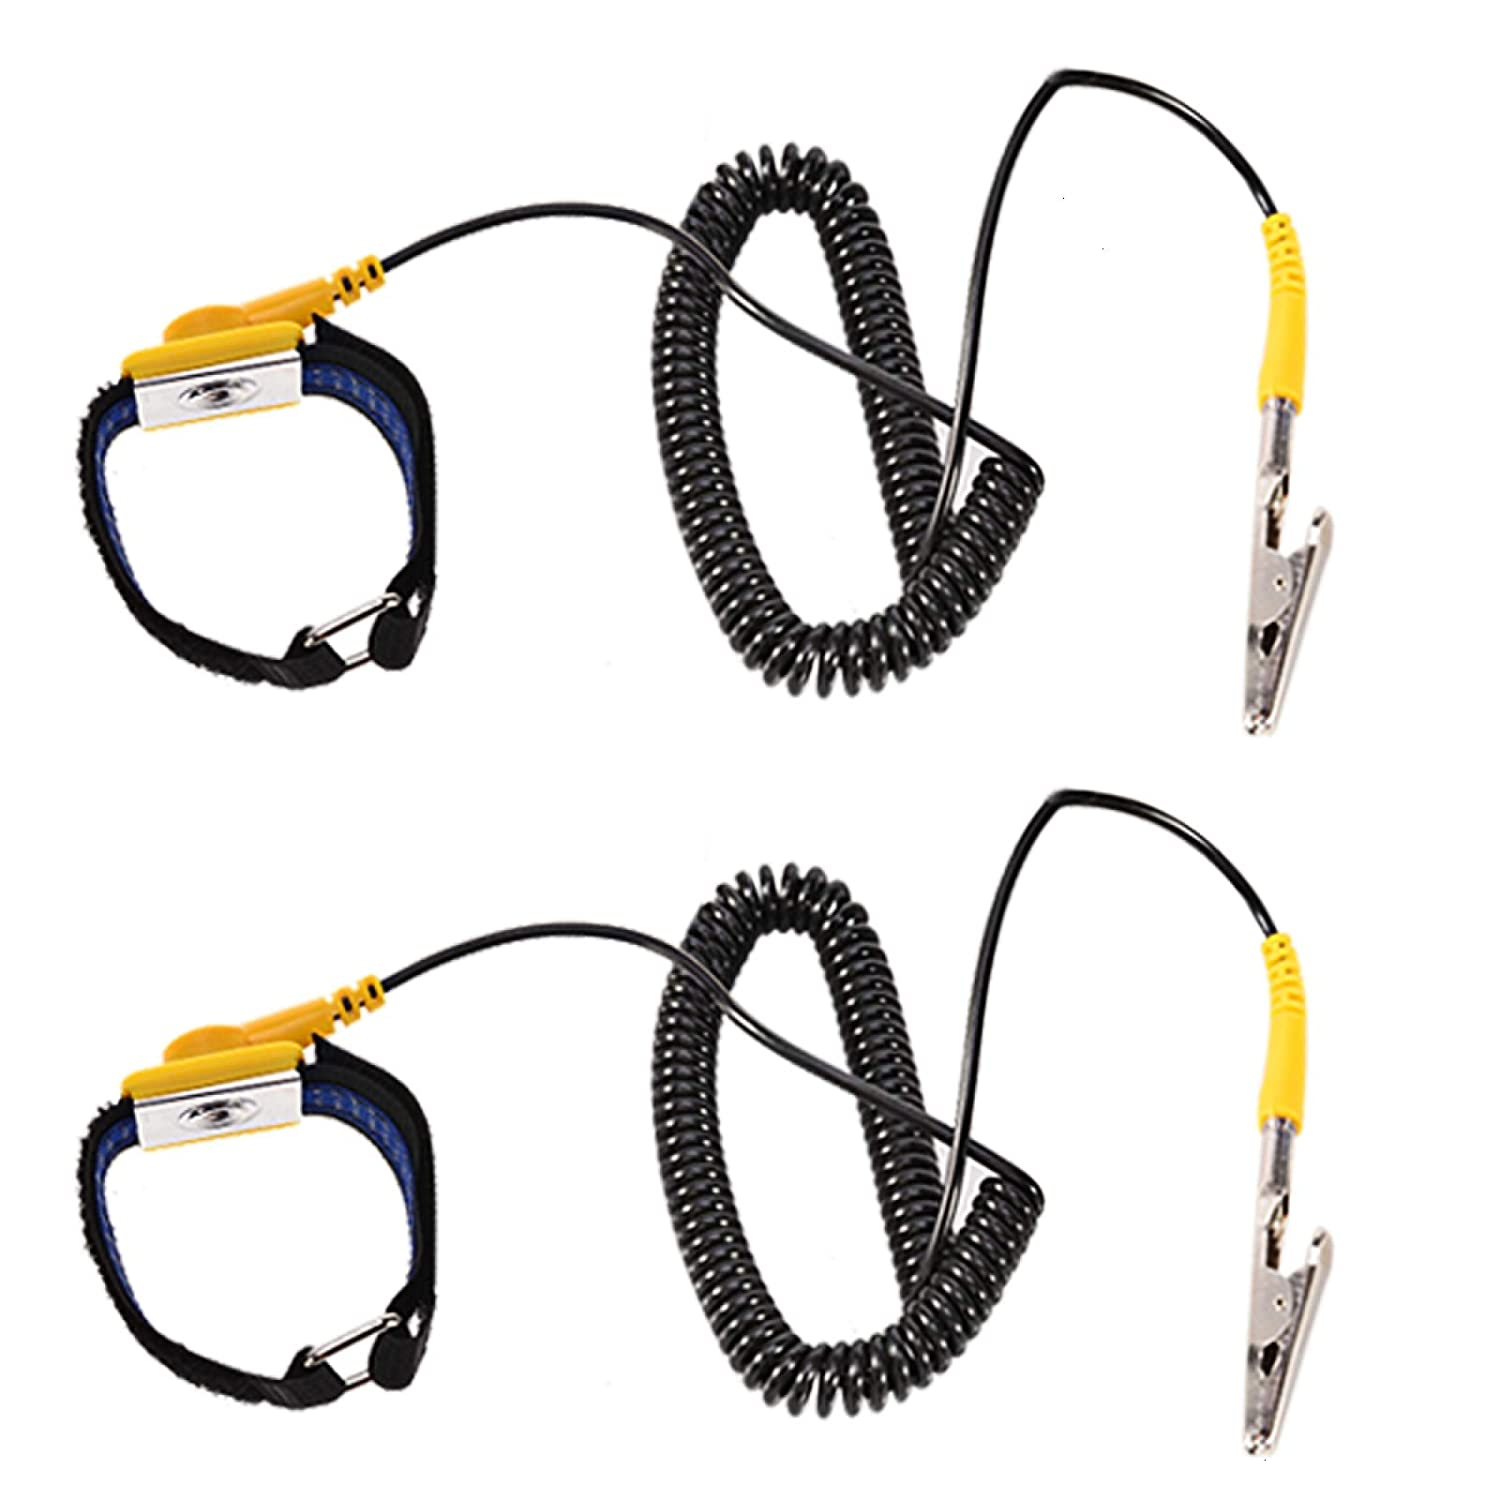 Power Tool Accessories Professional Sale Power Tool Accessories Anti Static Esd Strap Wrist Strap For Working On Electric Devices With Grounding Wire And Alligator Clip Selected Material